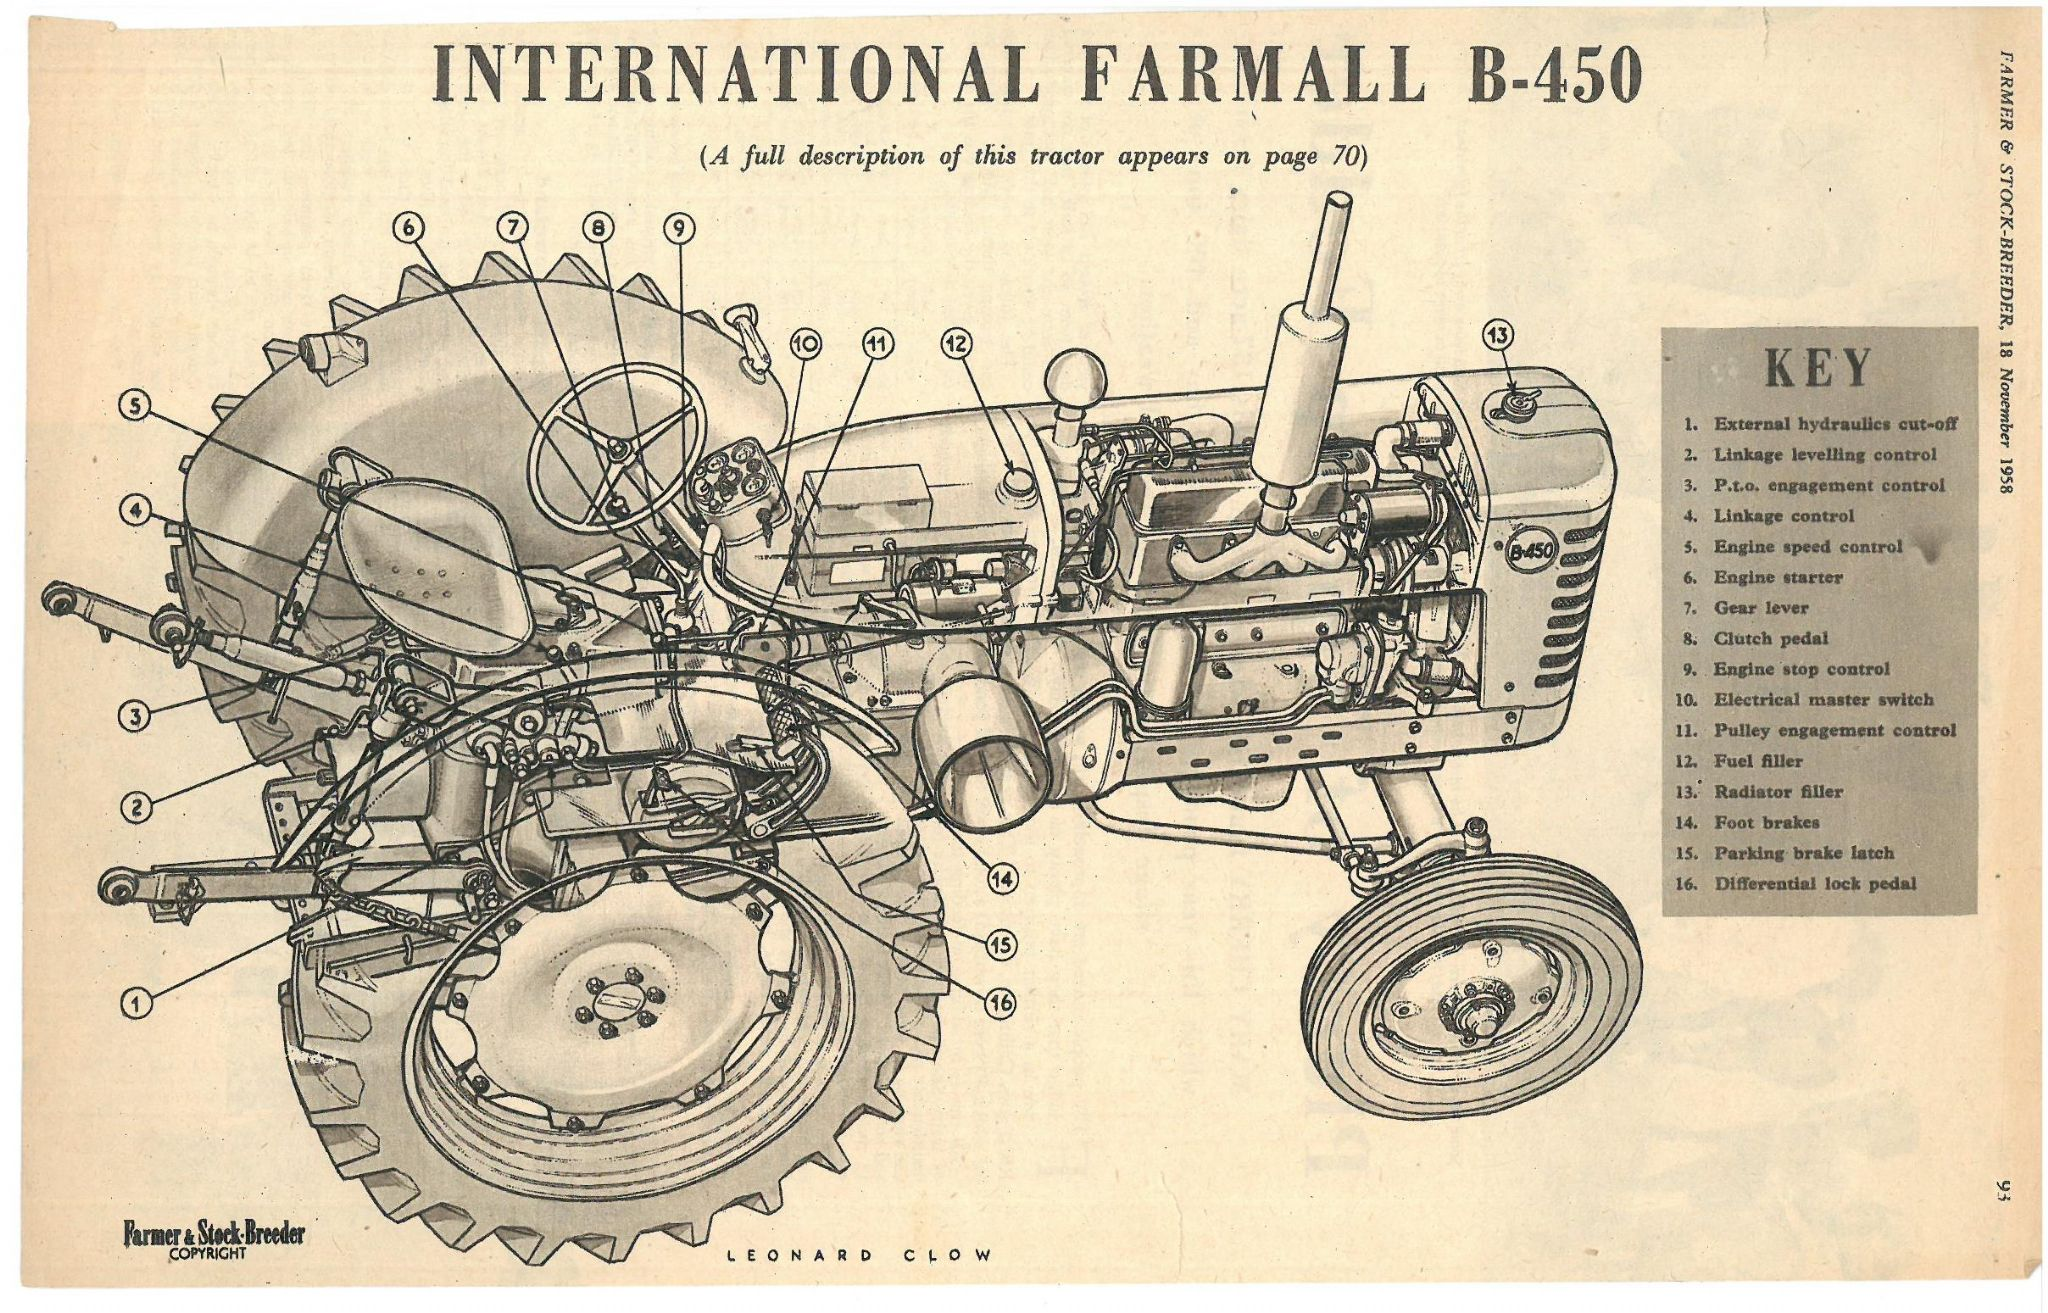 Farmall Tractor Diagram - Wiring Diagram Replace mere-expect -  mere-expect.miramontiseo.itmere-expect.miramontiseo.it